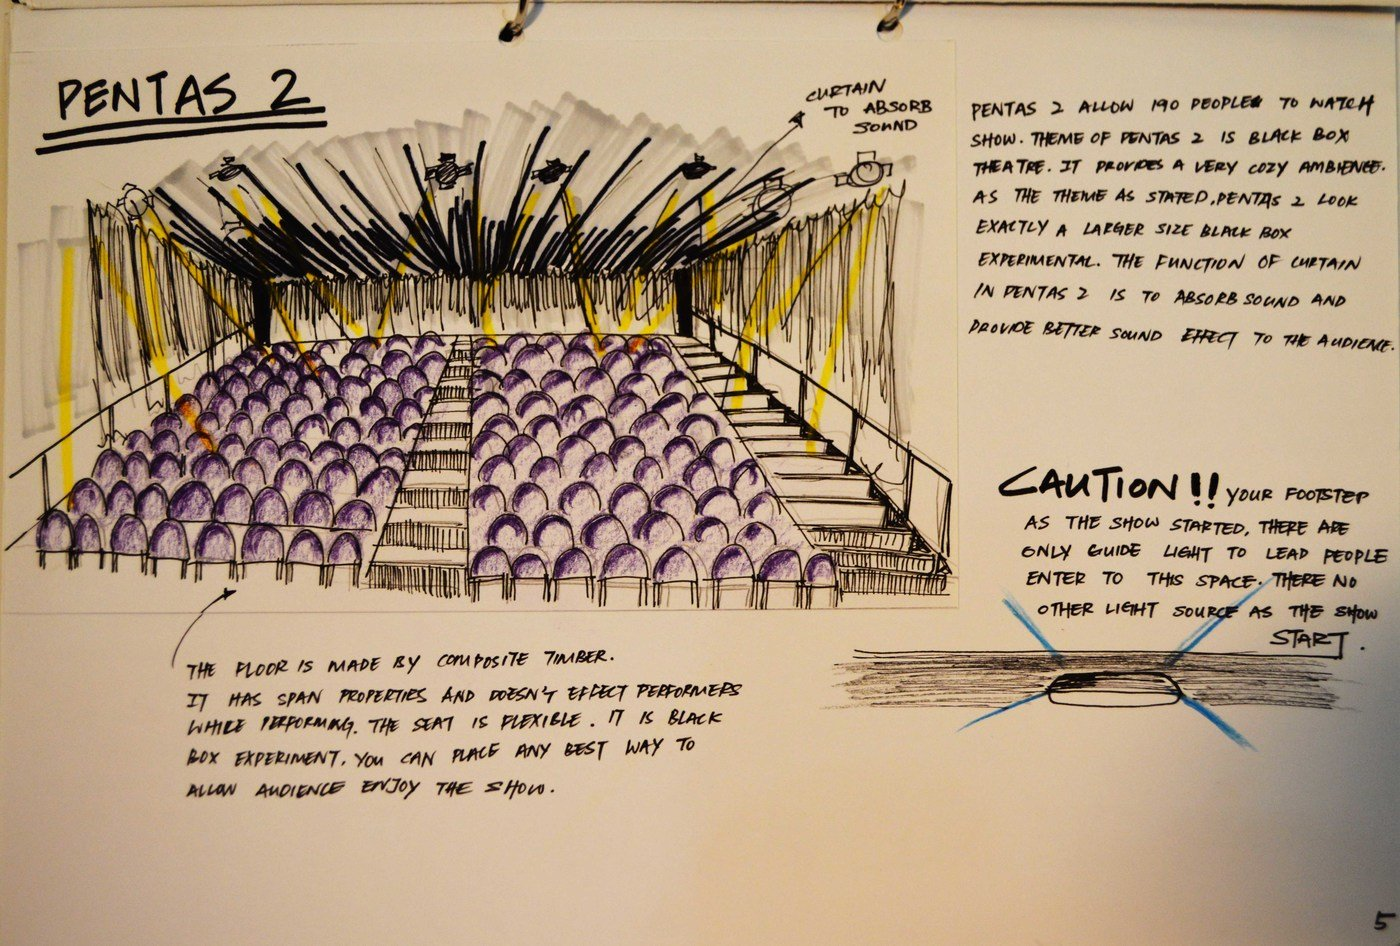 Journal Klpac By Vivian See At Black Box Stage Diagram Theater Would Need To Be Larger